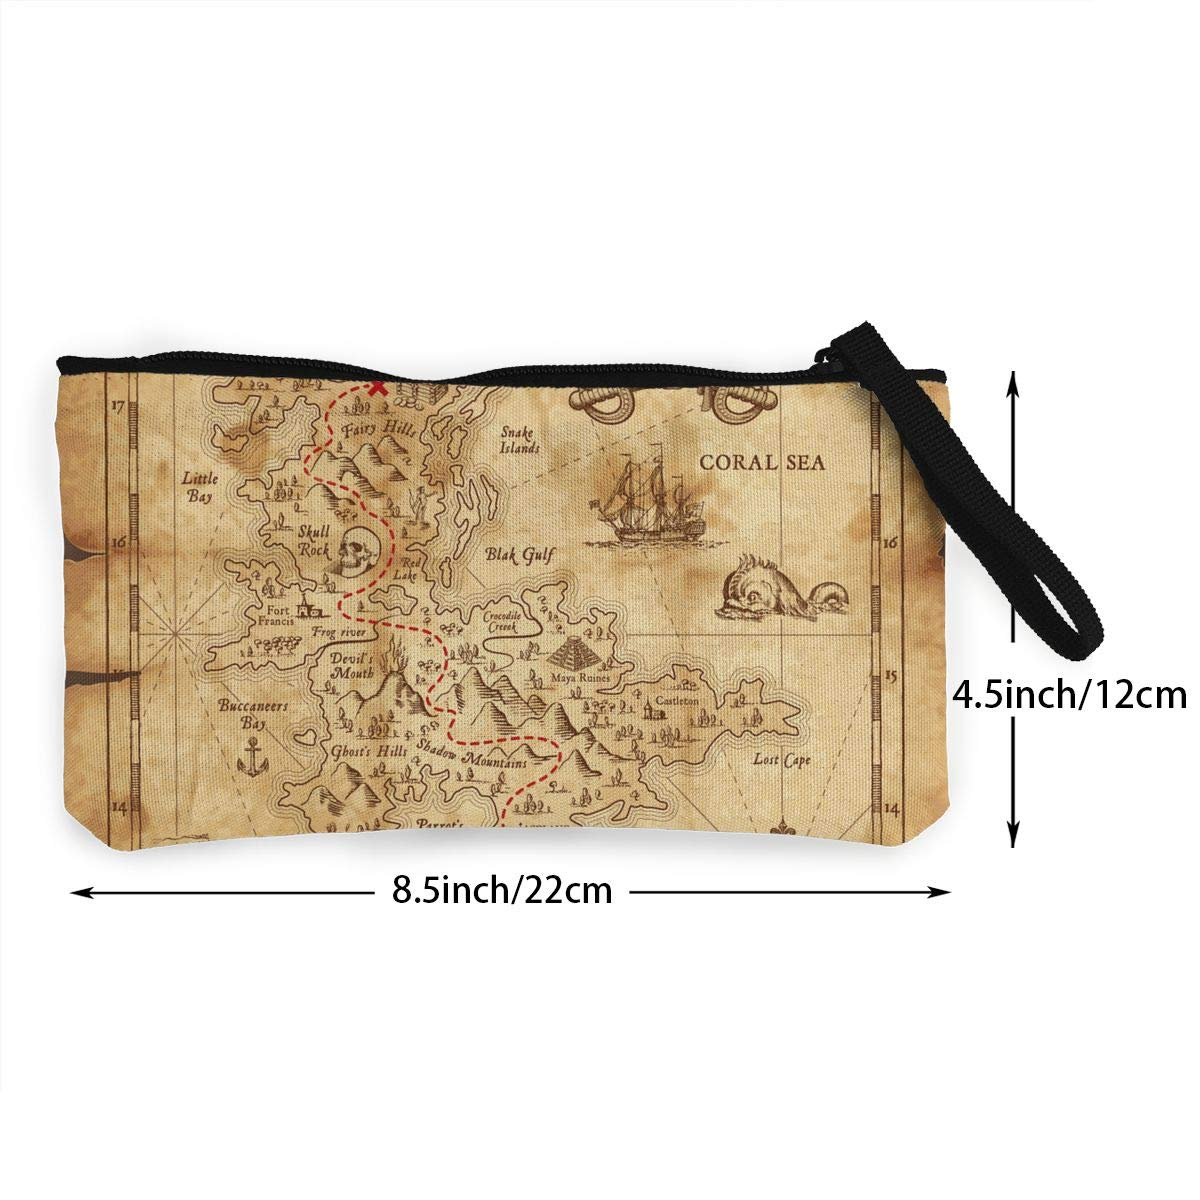 Maple Memories Coconut Palms Portable Canvas Coin Purse Change Purse Pouch Mini Wallet Gifts For Women Girls